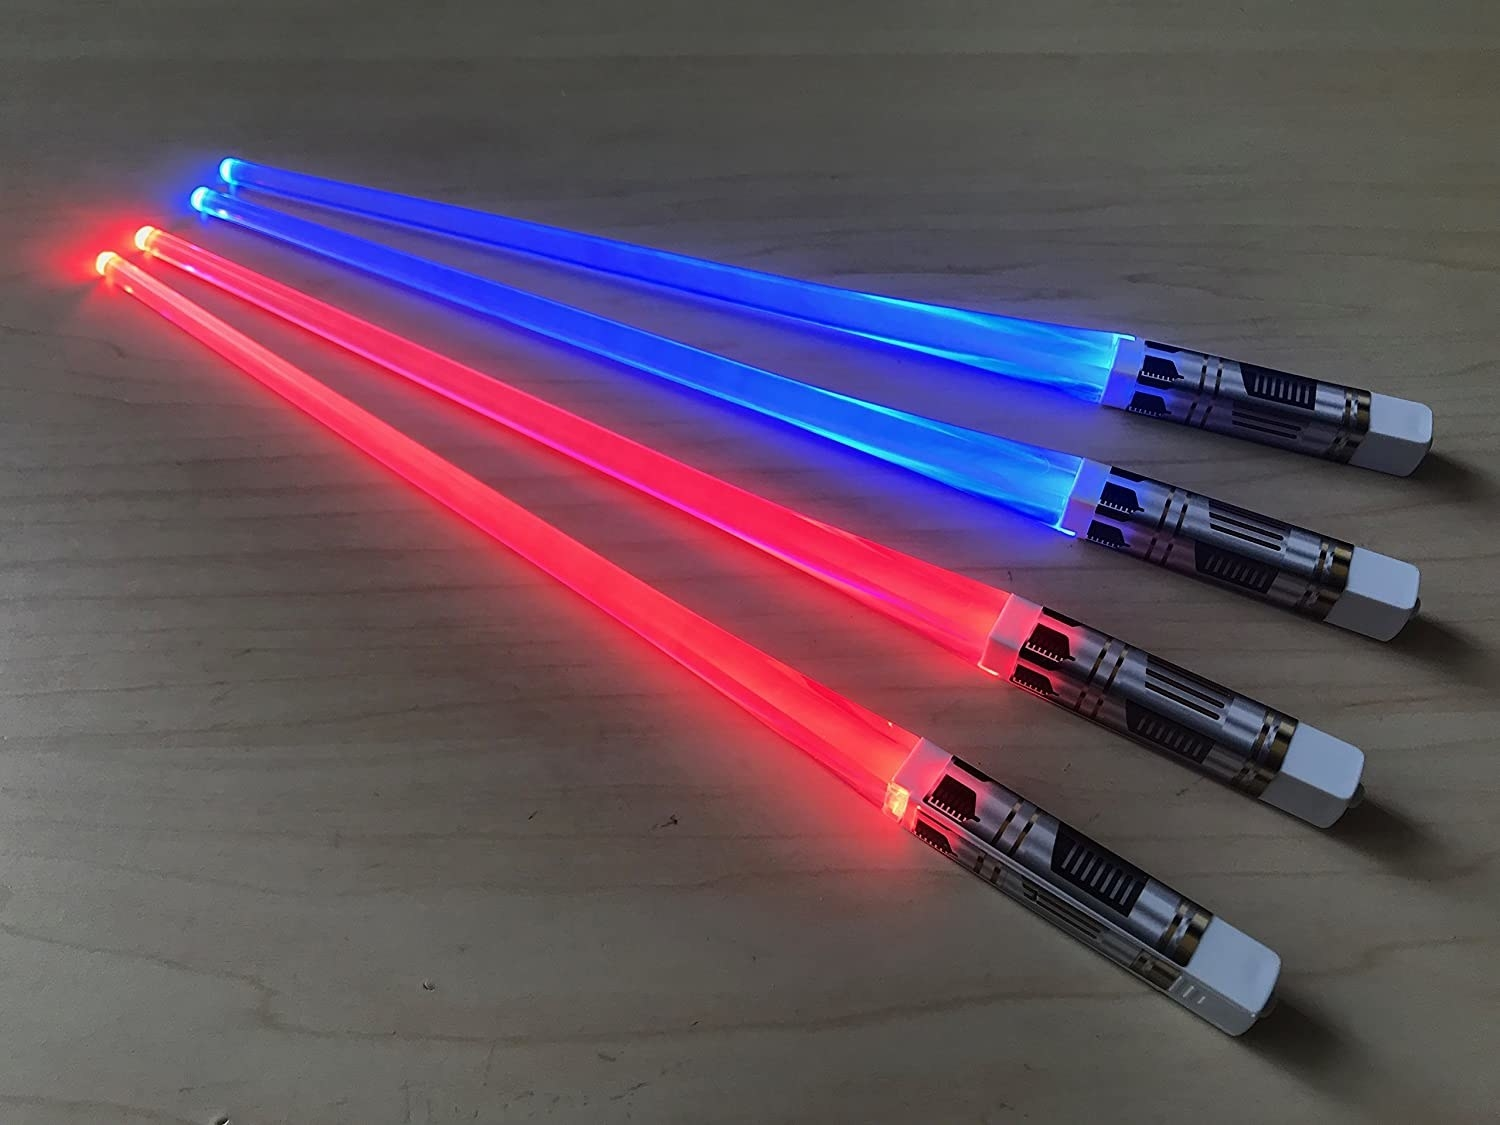 Two pairs of lightsaber chopsticks on a wooden table